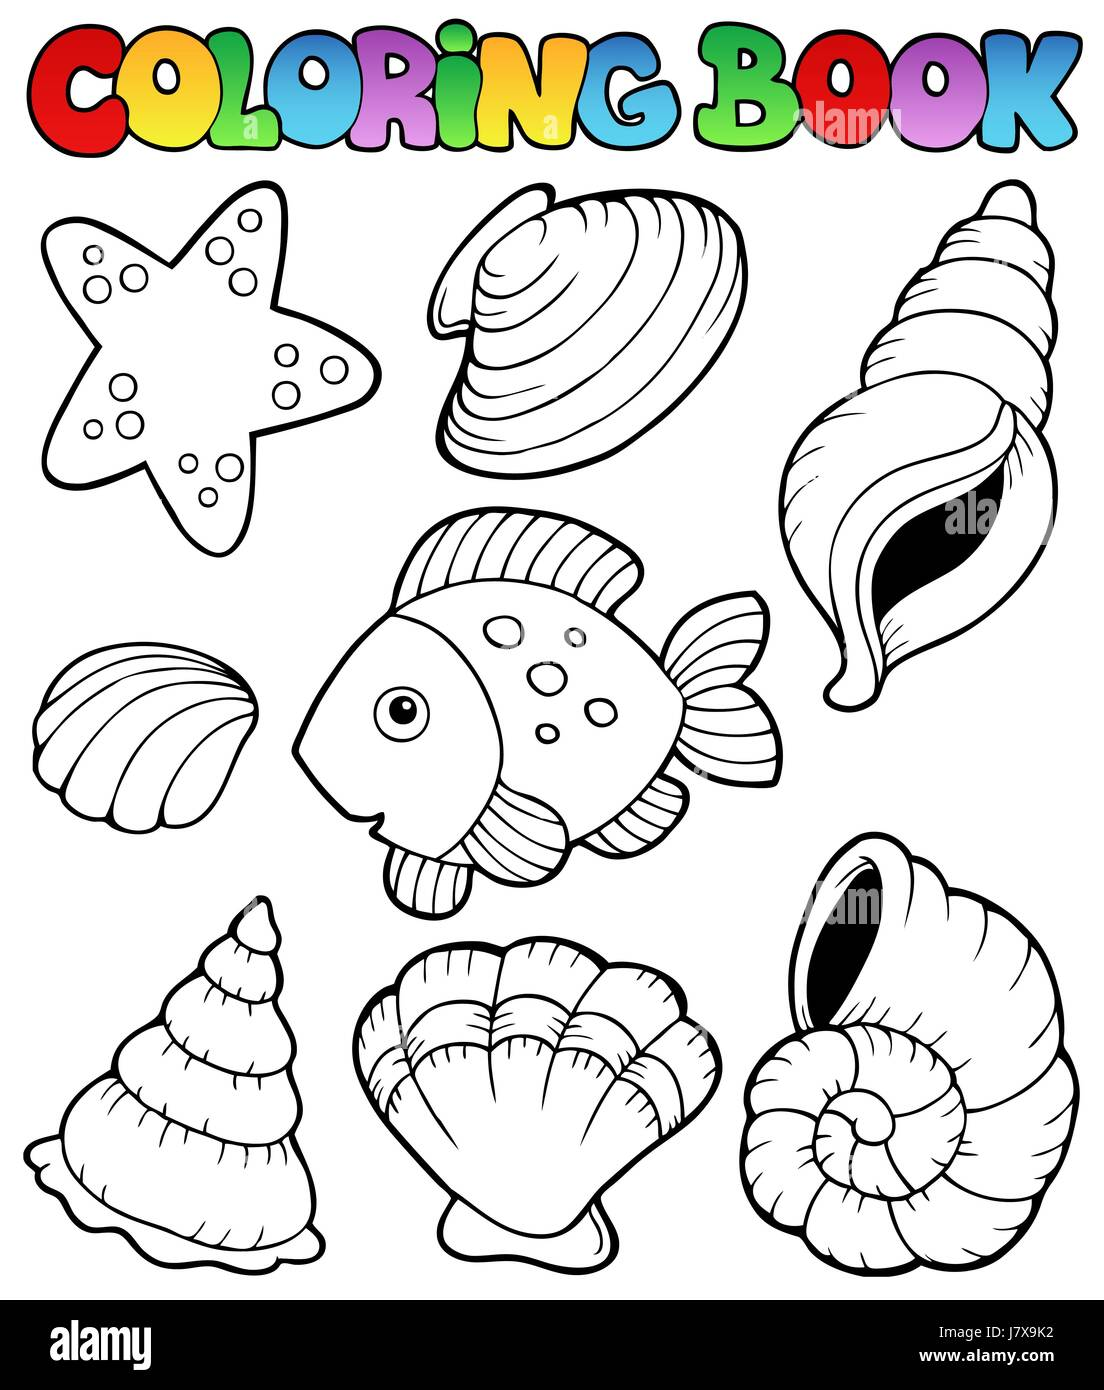 Colour book art - Stock Photo Colour Shell Paint Painted Seashell Colouring Shells Mussels Book Art Colour